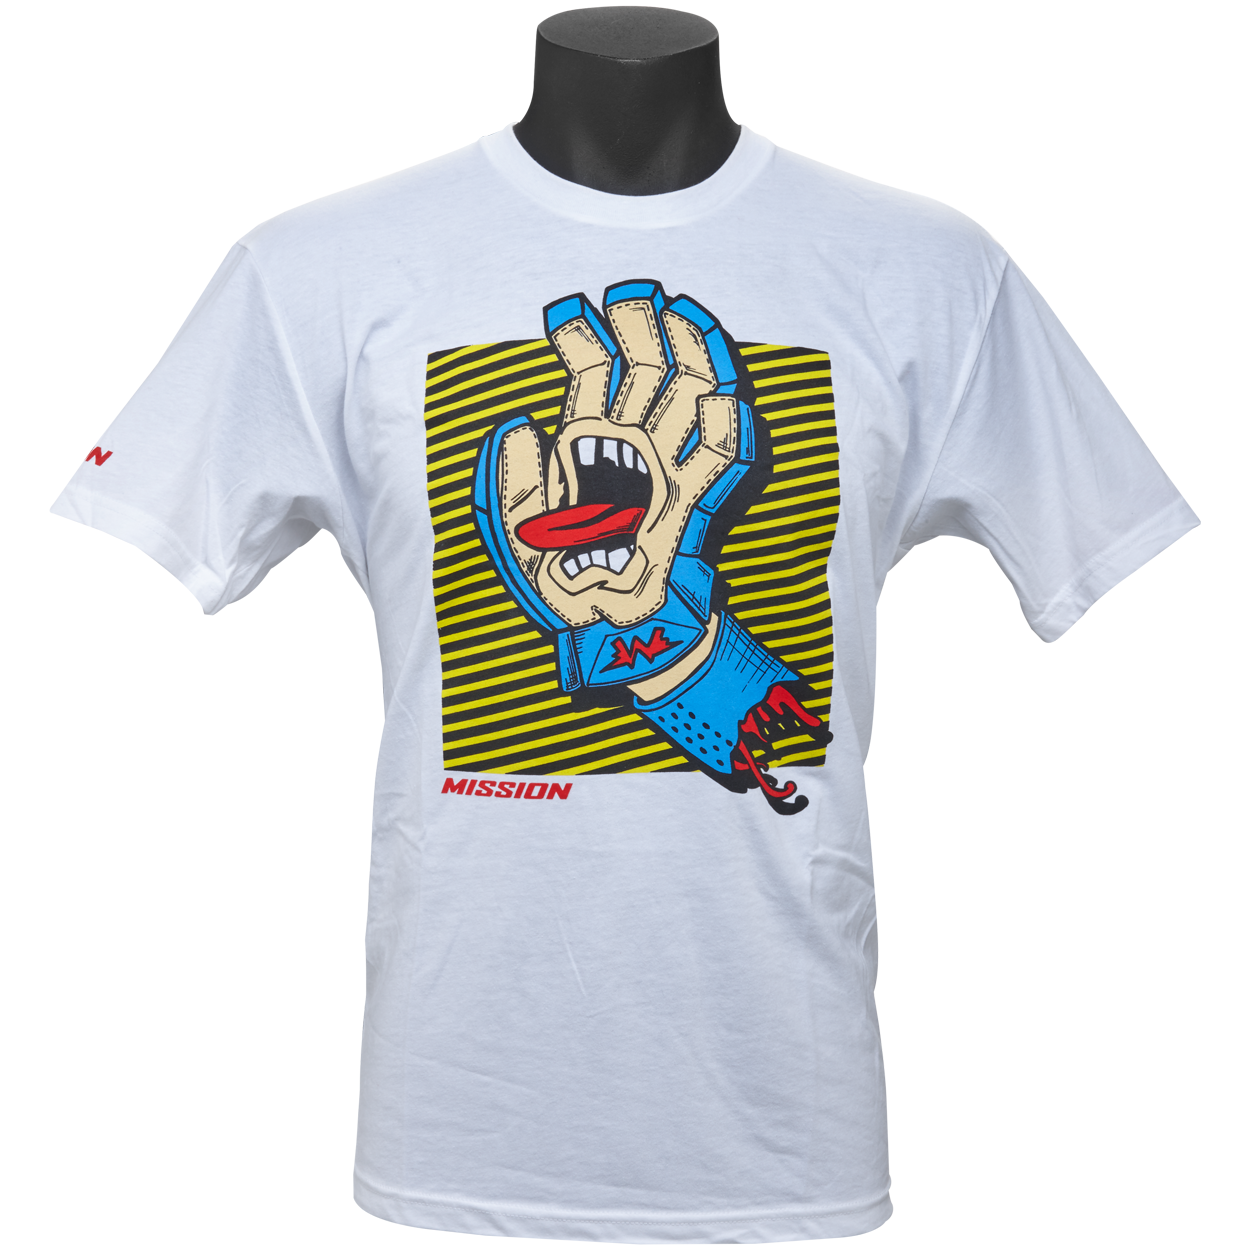 MISSION Screaming Glove T-Shirt Senior